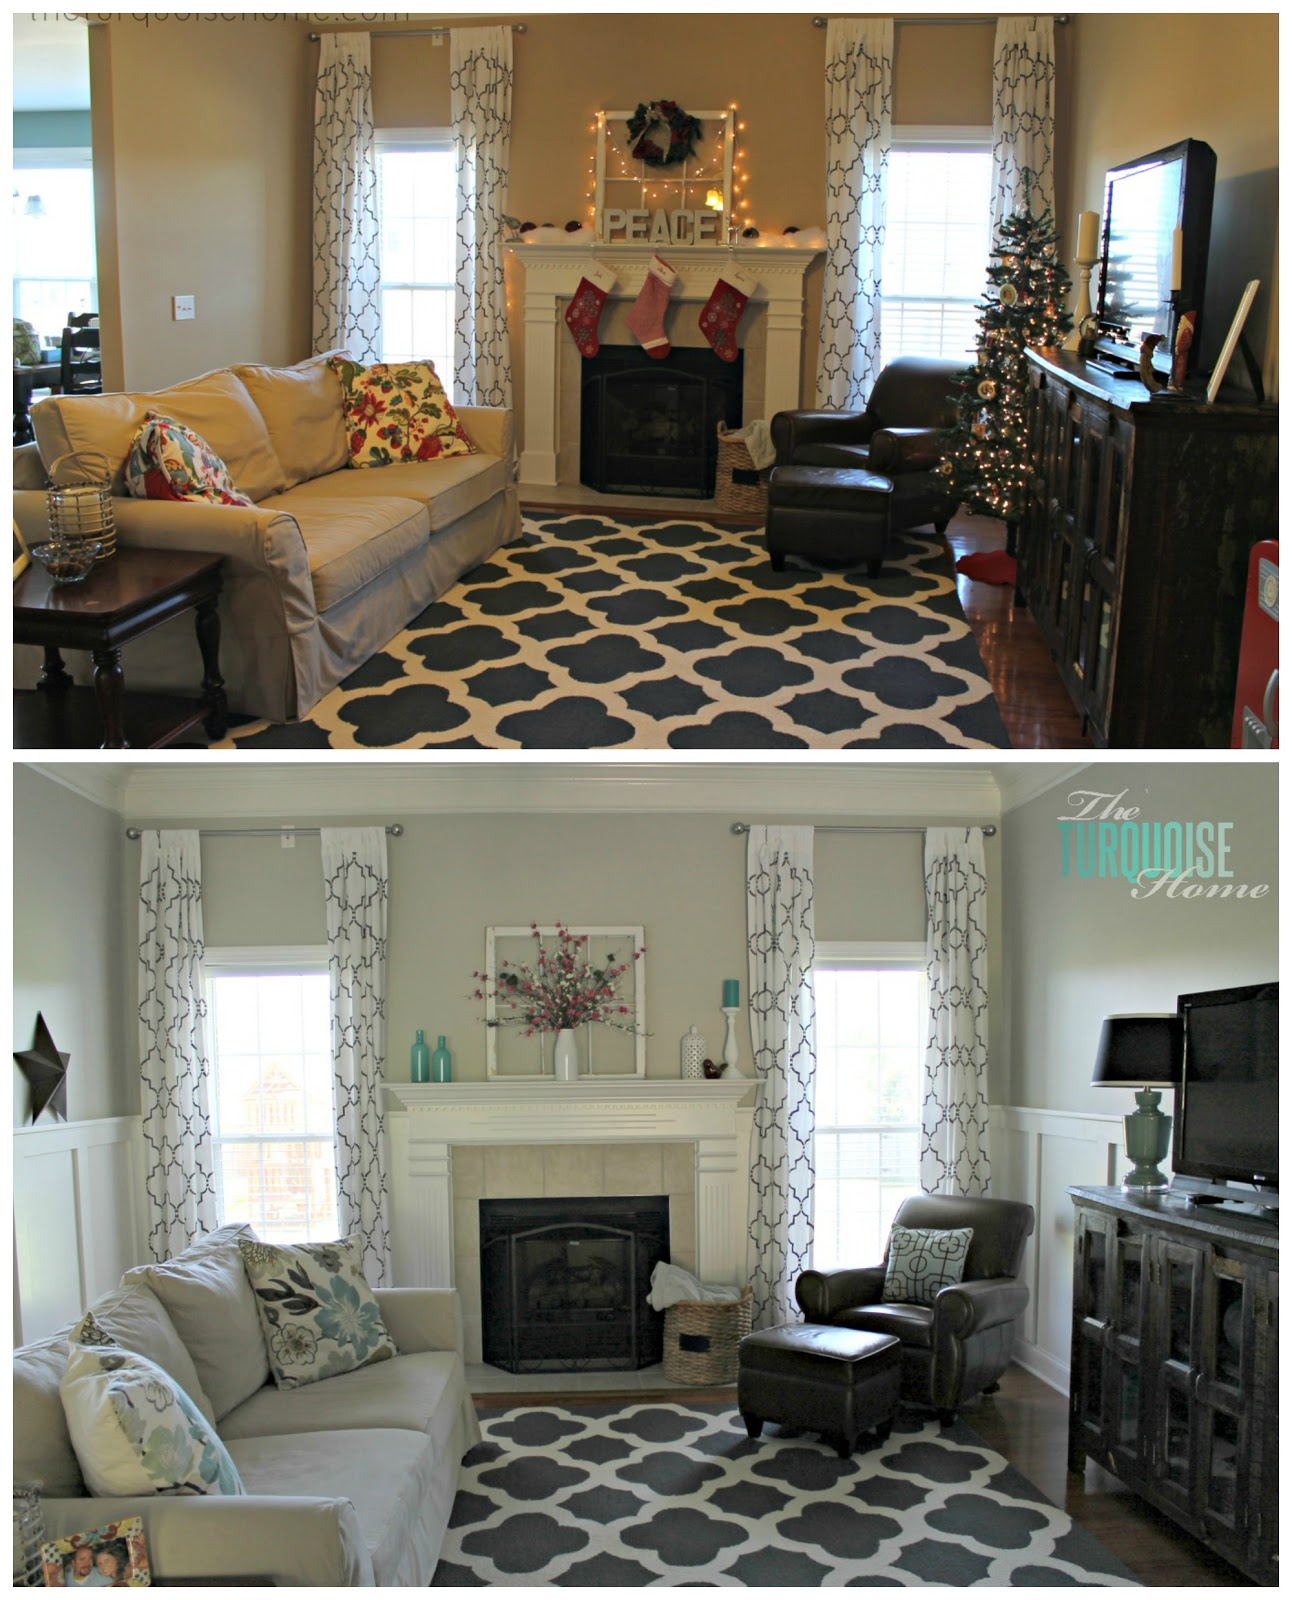 living room makeover - part 7: final reveal | the turquoise home